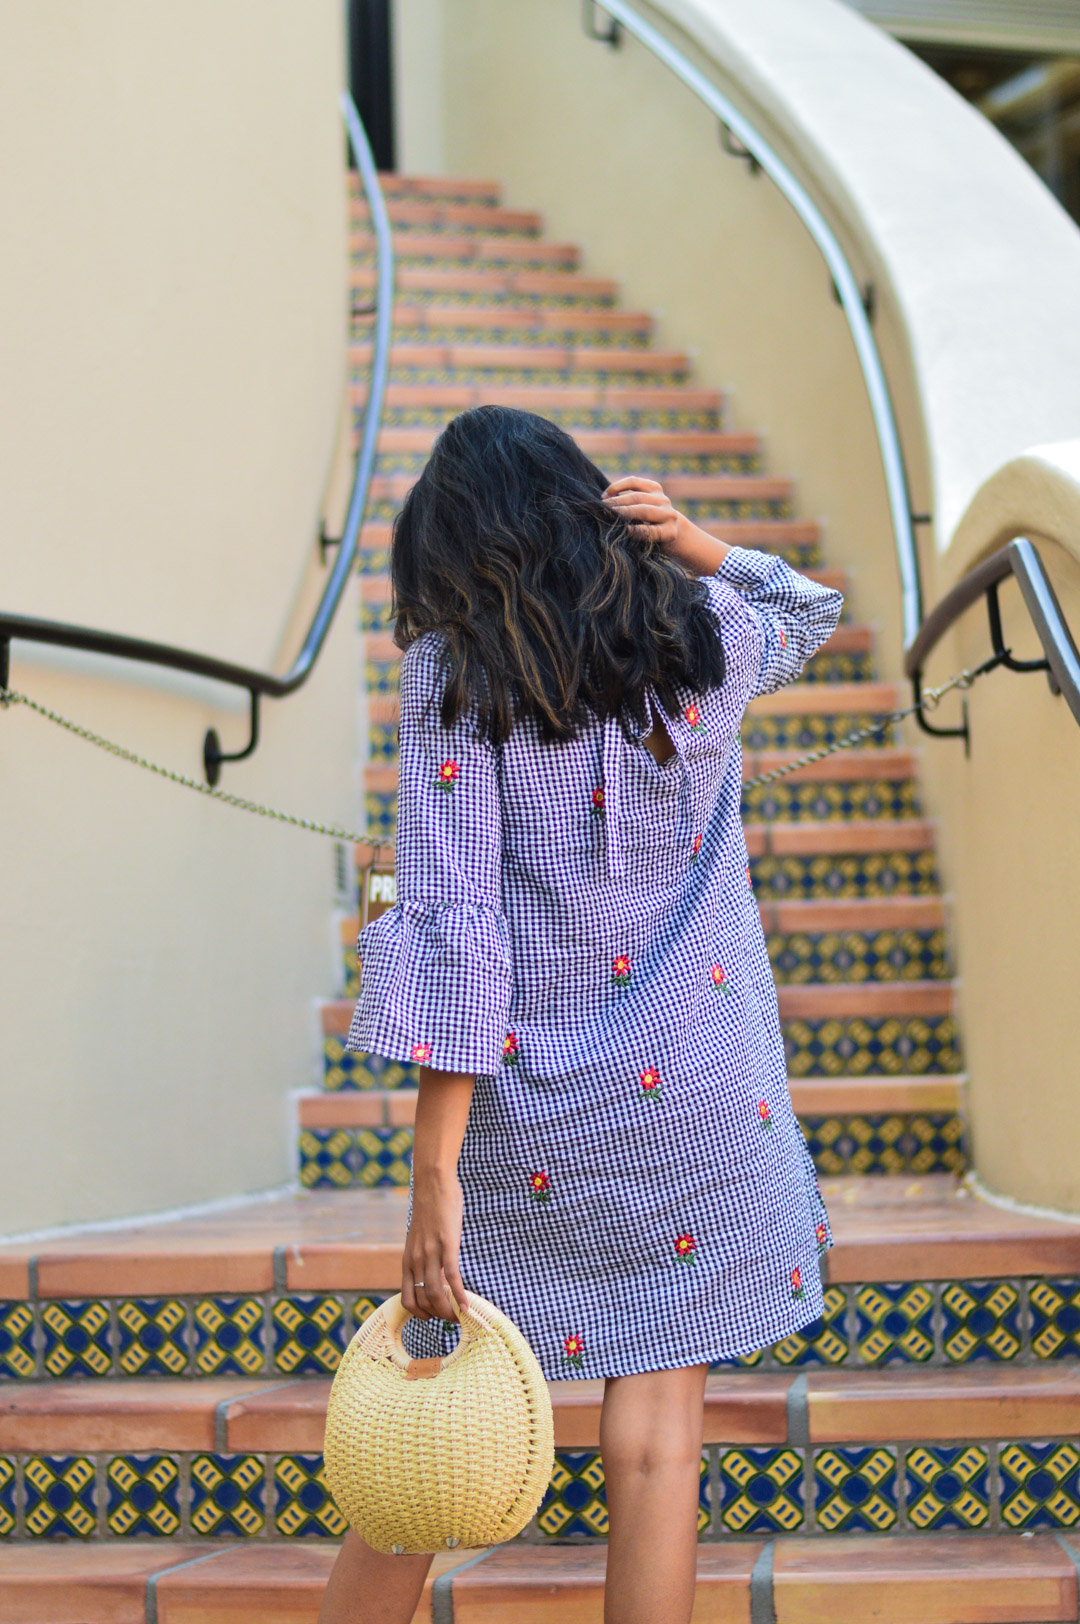 gingham-embroidered-dress-summer-trends-fashion-blogger-outfit 7